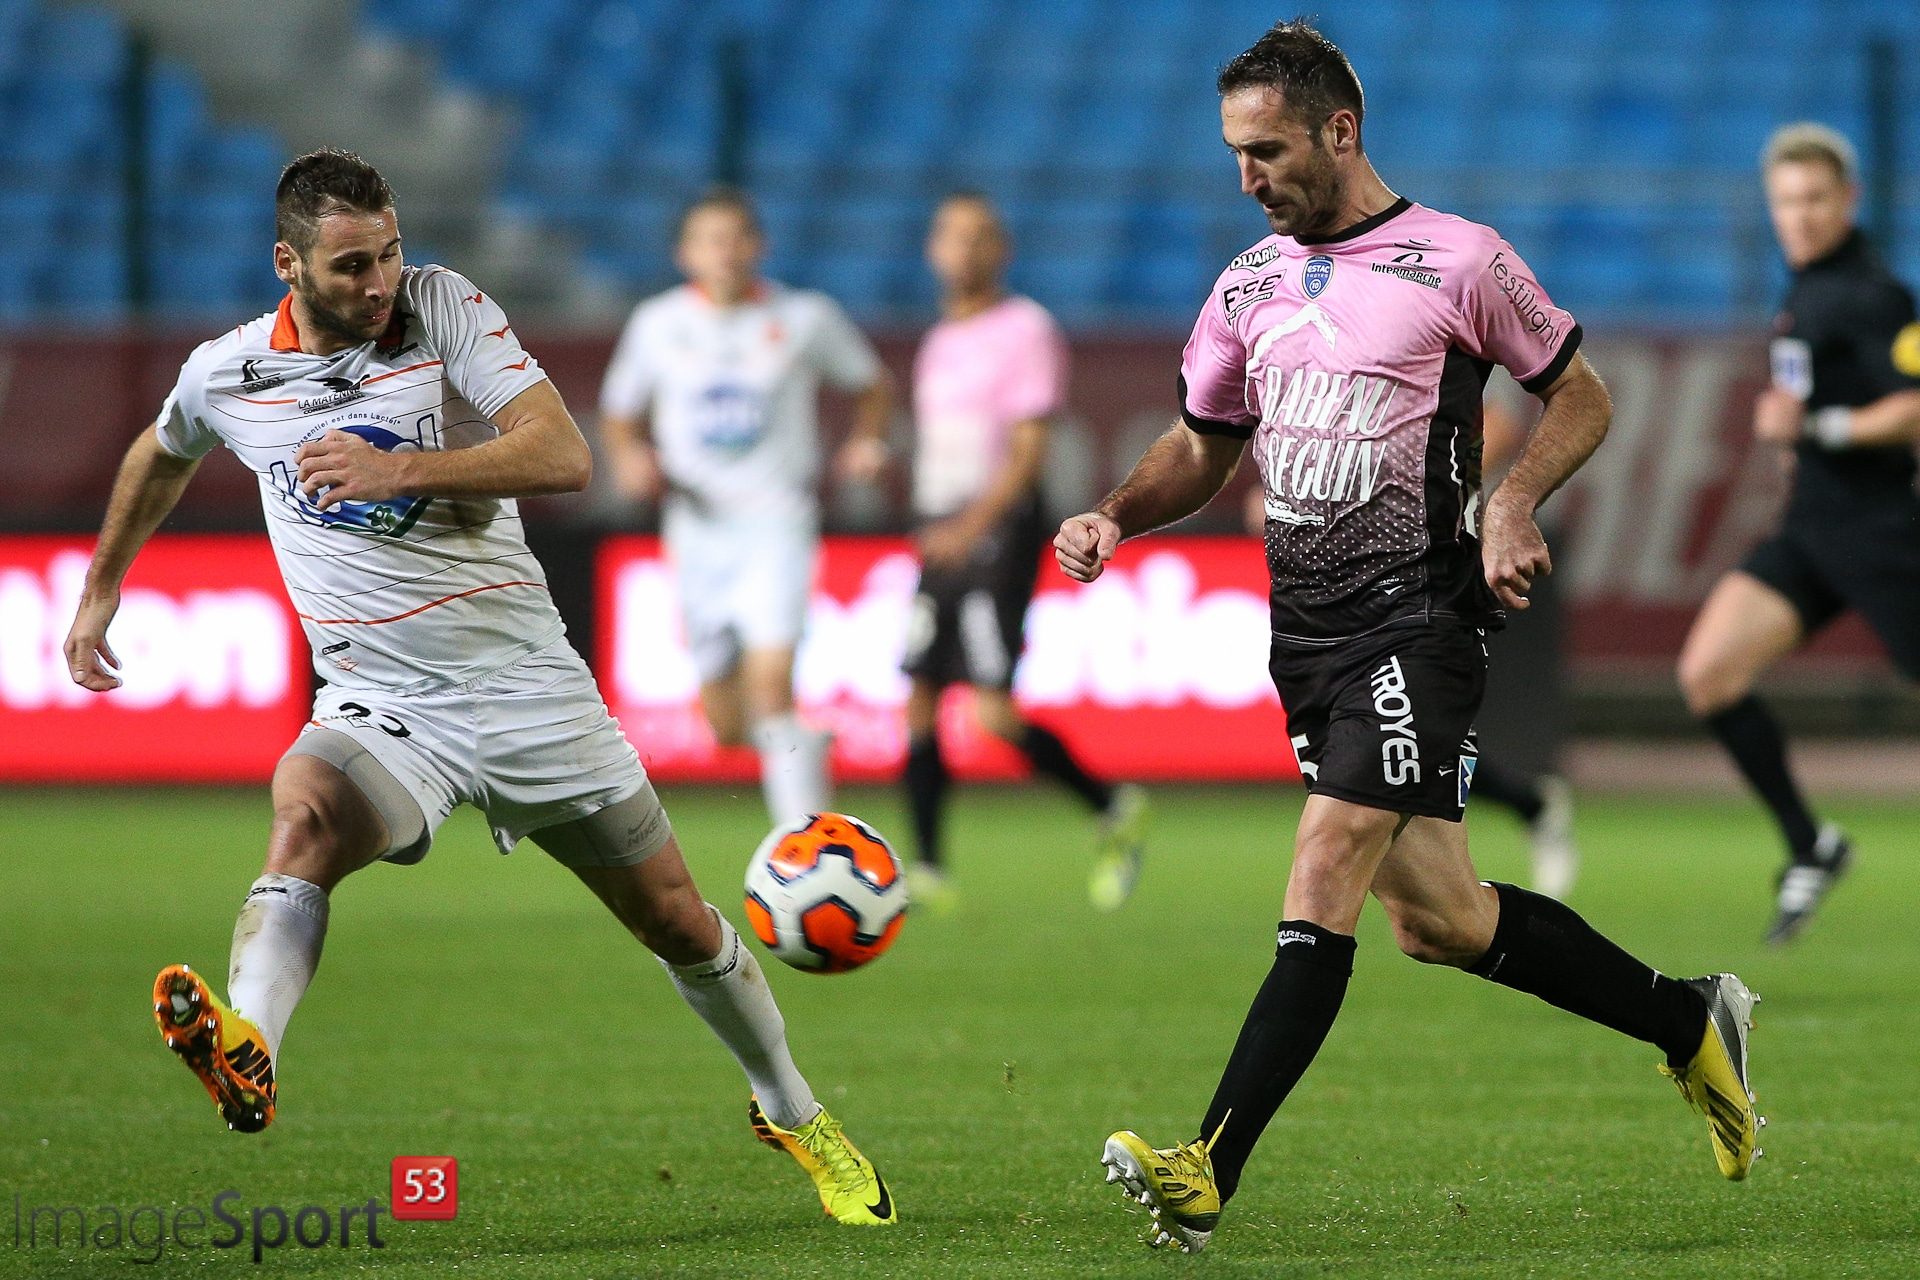 NG_1314_Ligue2_J14_-Troyes-Laval_24